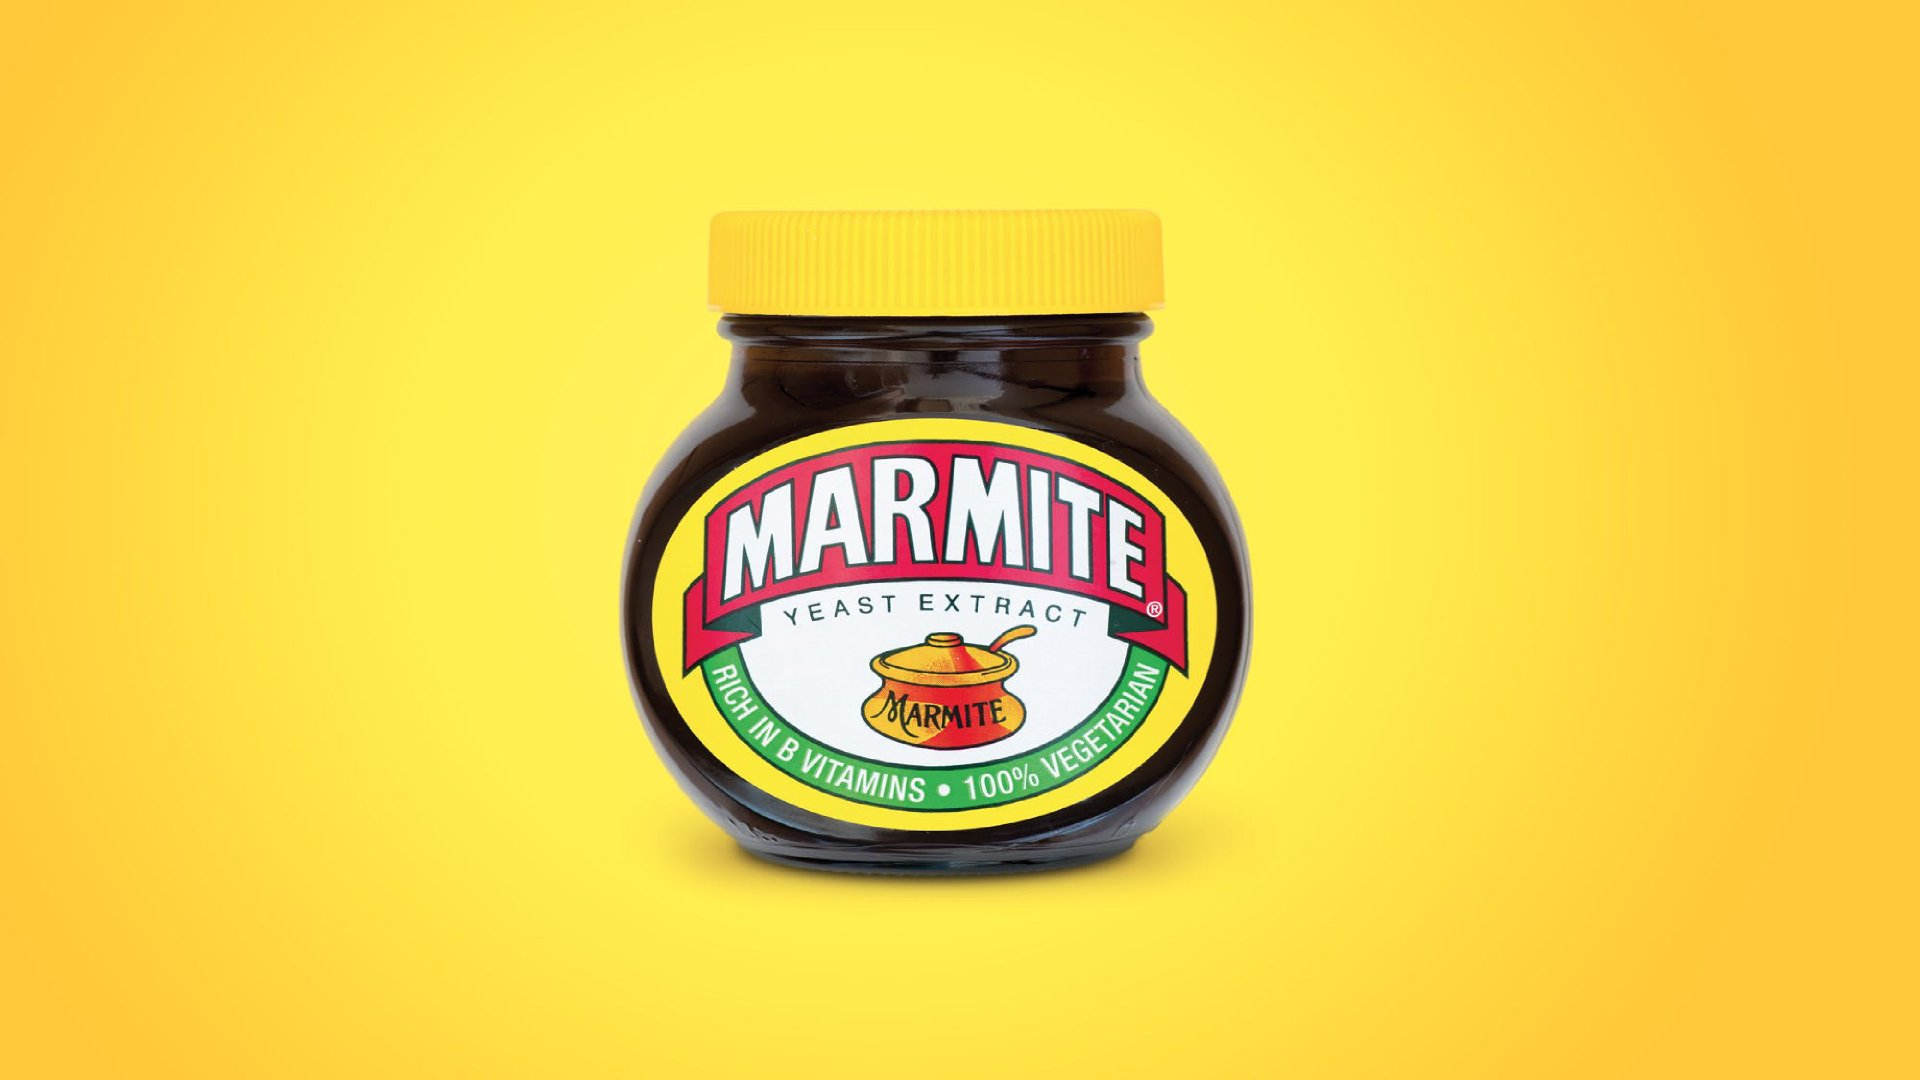 The thing that Marmite, Cards Against Humanity and John Lewis have in common – that your brand needs, too